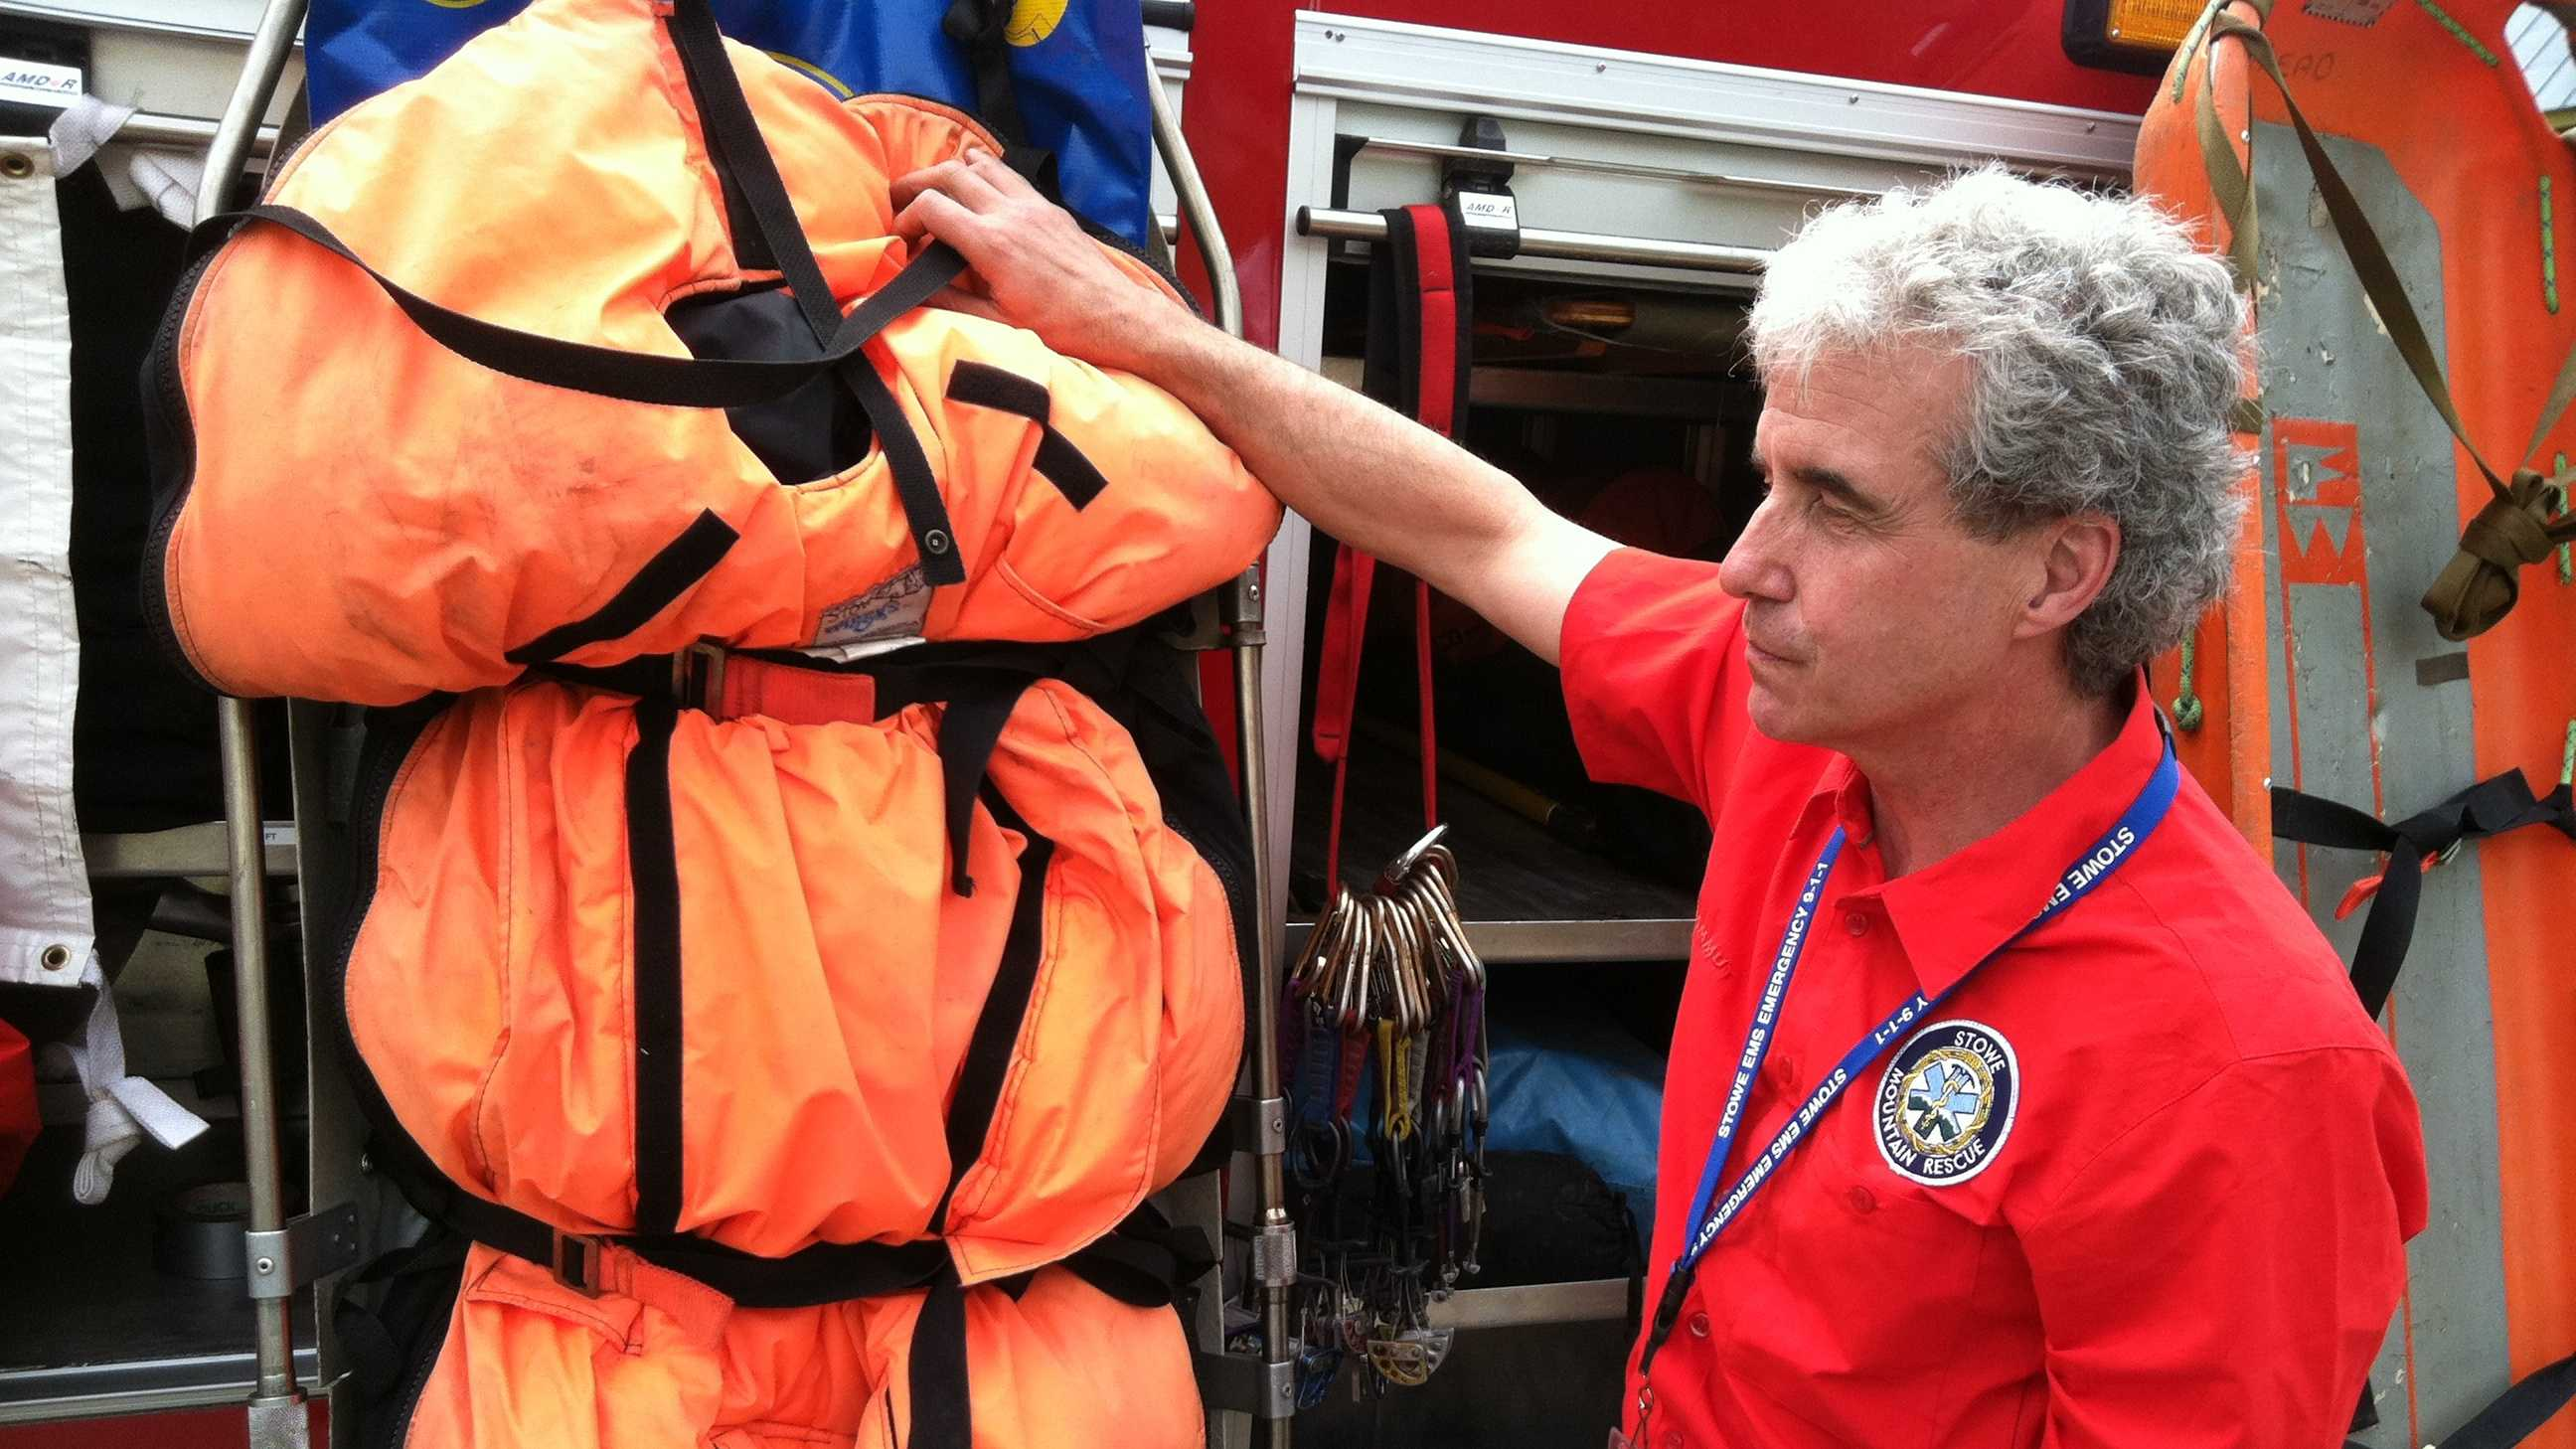 Graham Govoni, of Stowe Mtn. Rescue, shows the insulated bag used to transport cold, injured skiers down off the mountain.